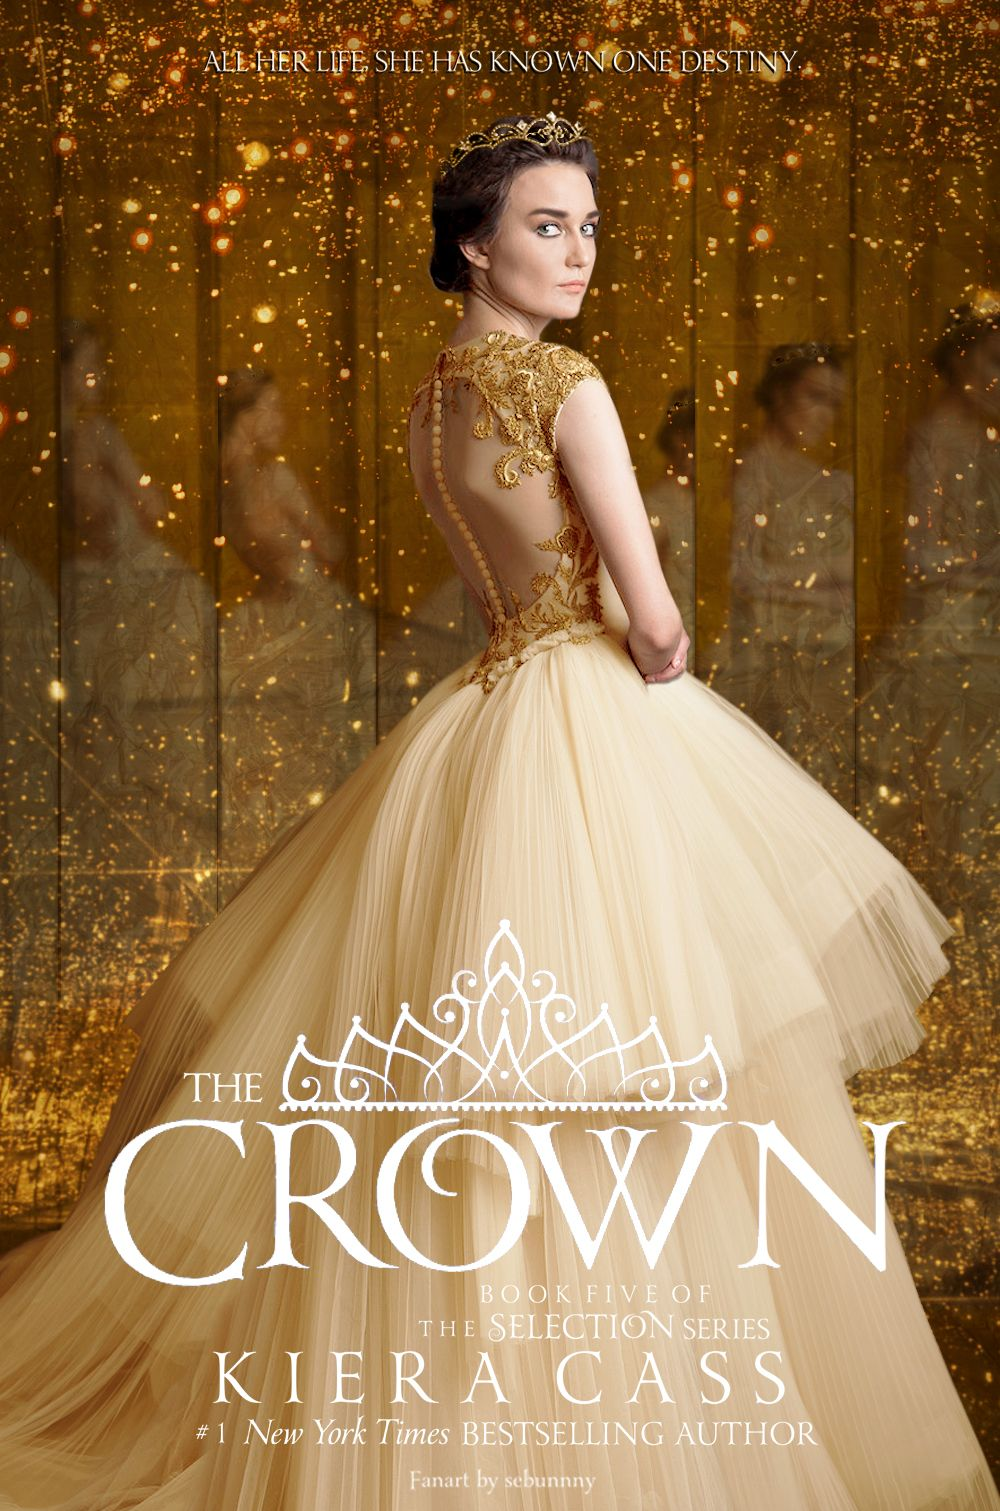 The Selection Series Book Cover ~ Sebunnny fanart bookcover gt the crown by kiera cass